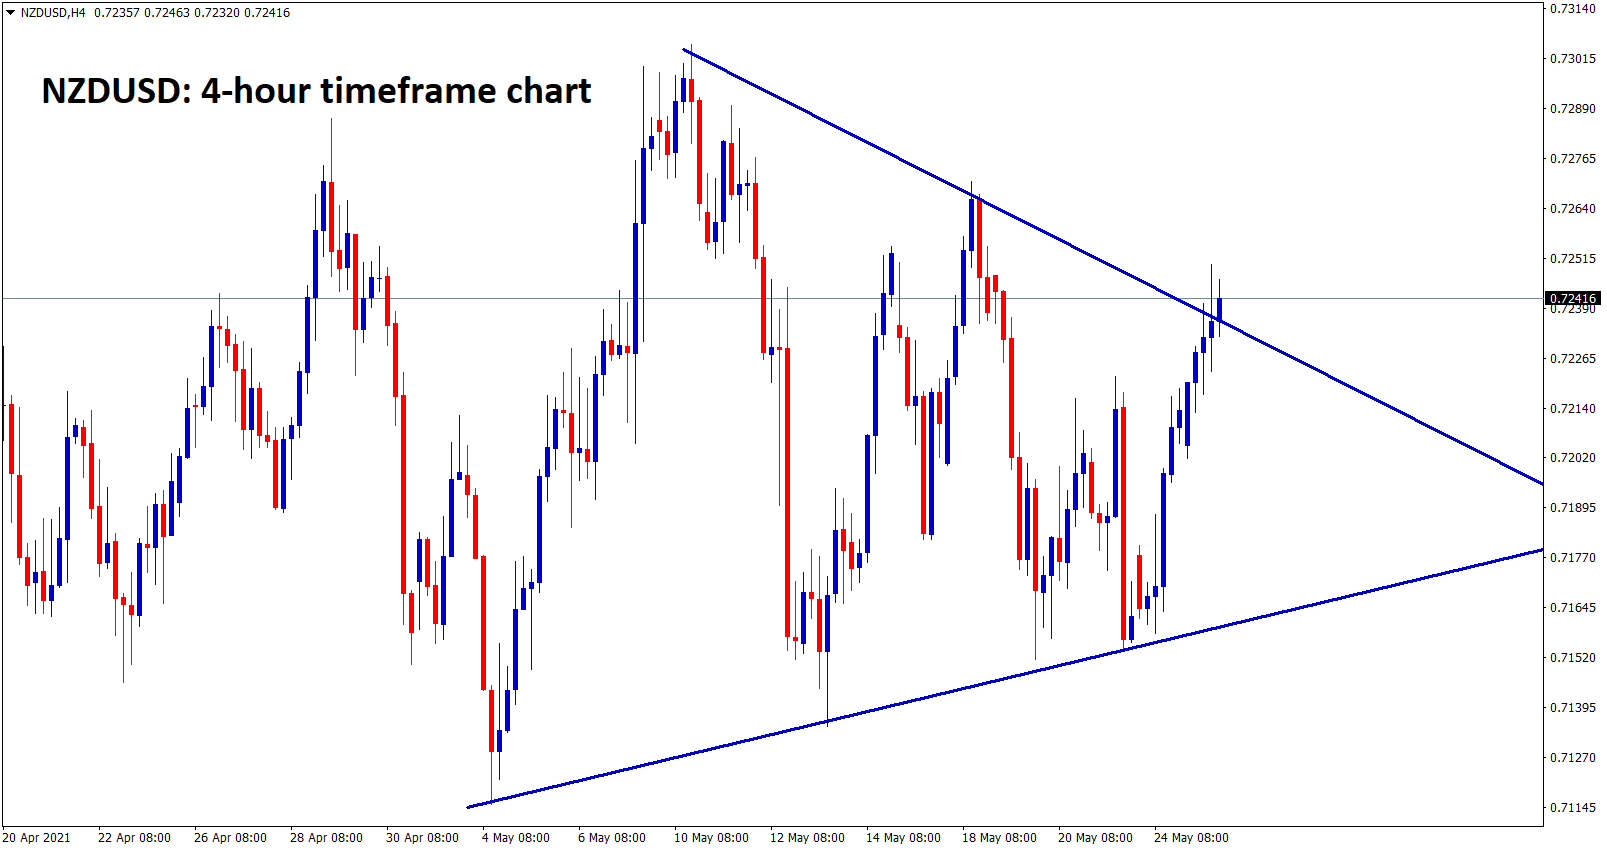 NZDUSD is trying to break the top level of the symmetrical triangle pattern in H4 chart